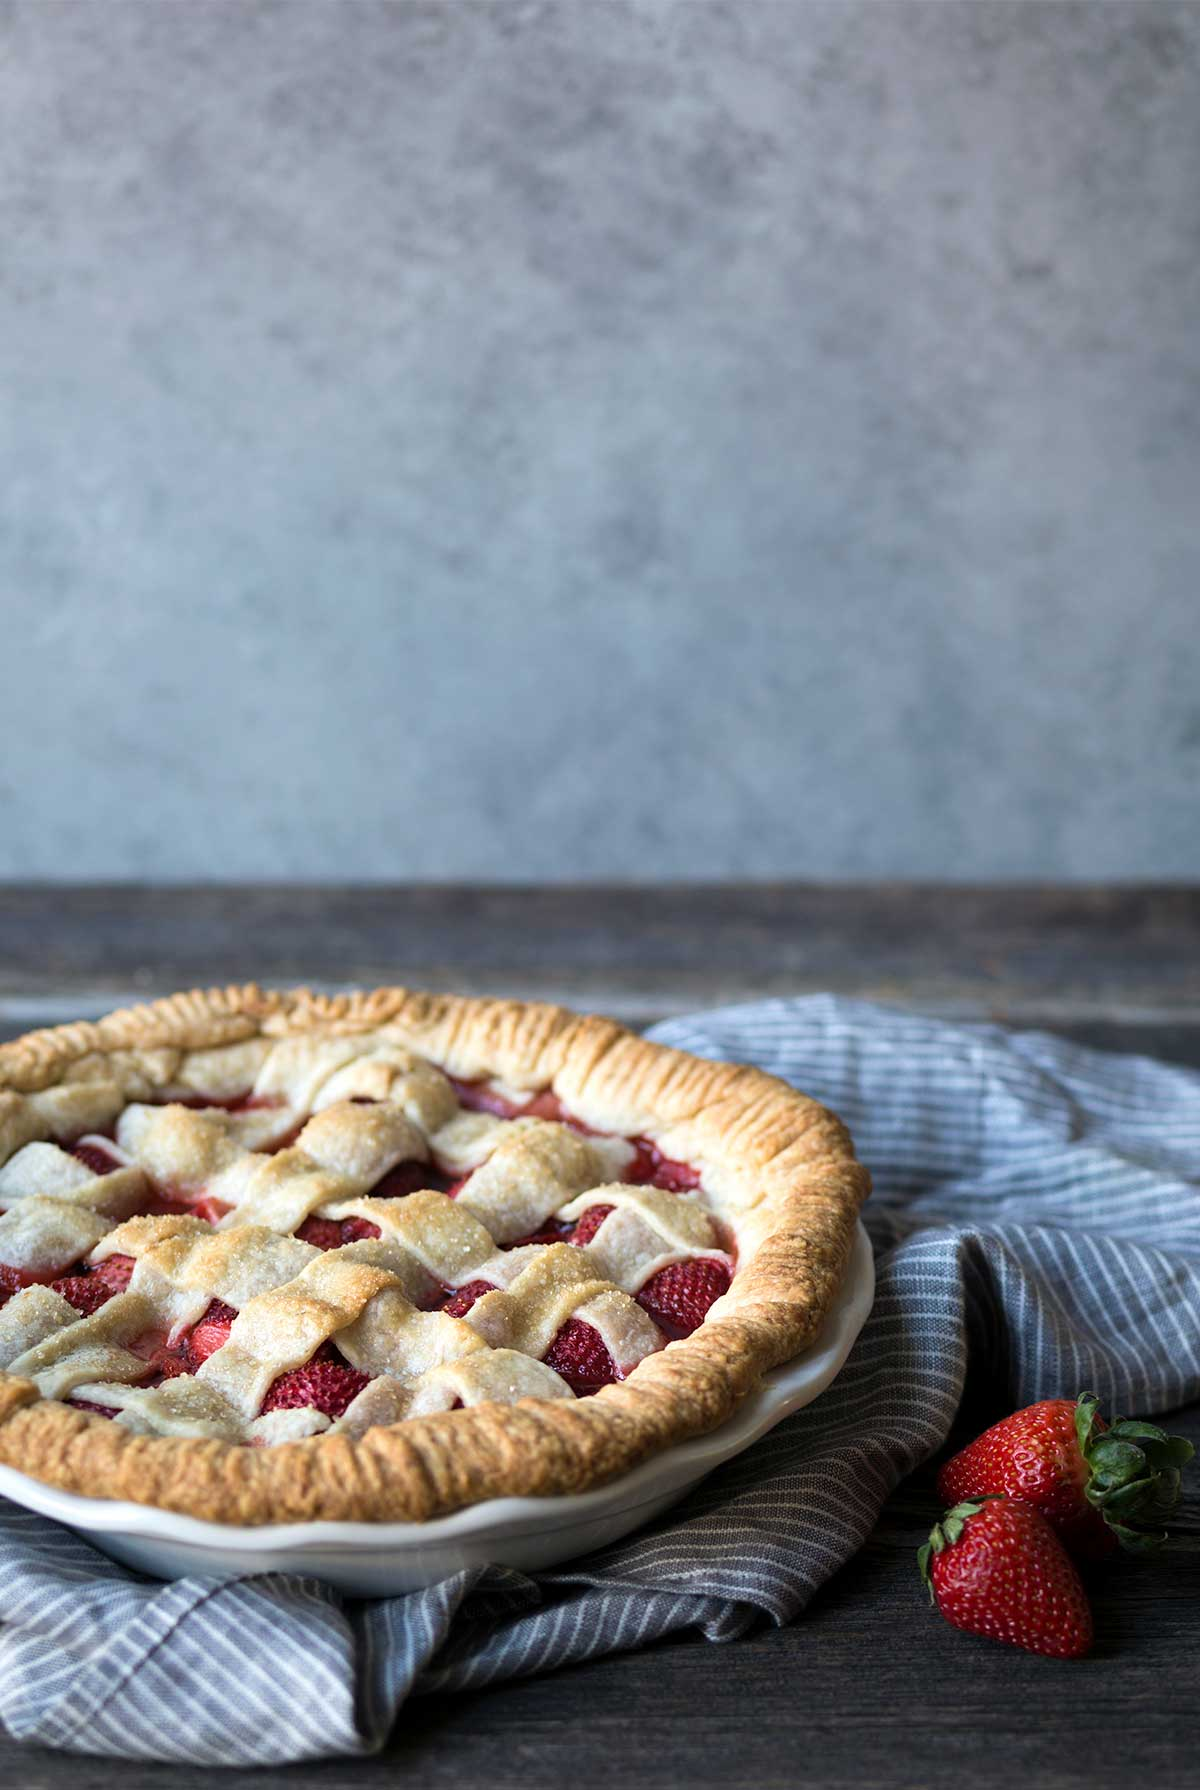 Fresh strawberry pie with a lattice top, sitting on a blue toned napkin next to fresh strawberries.